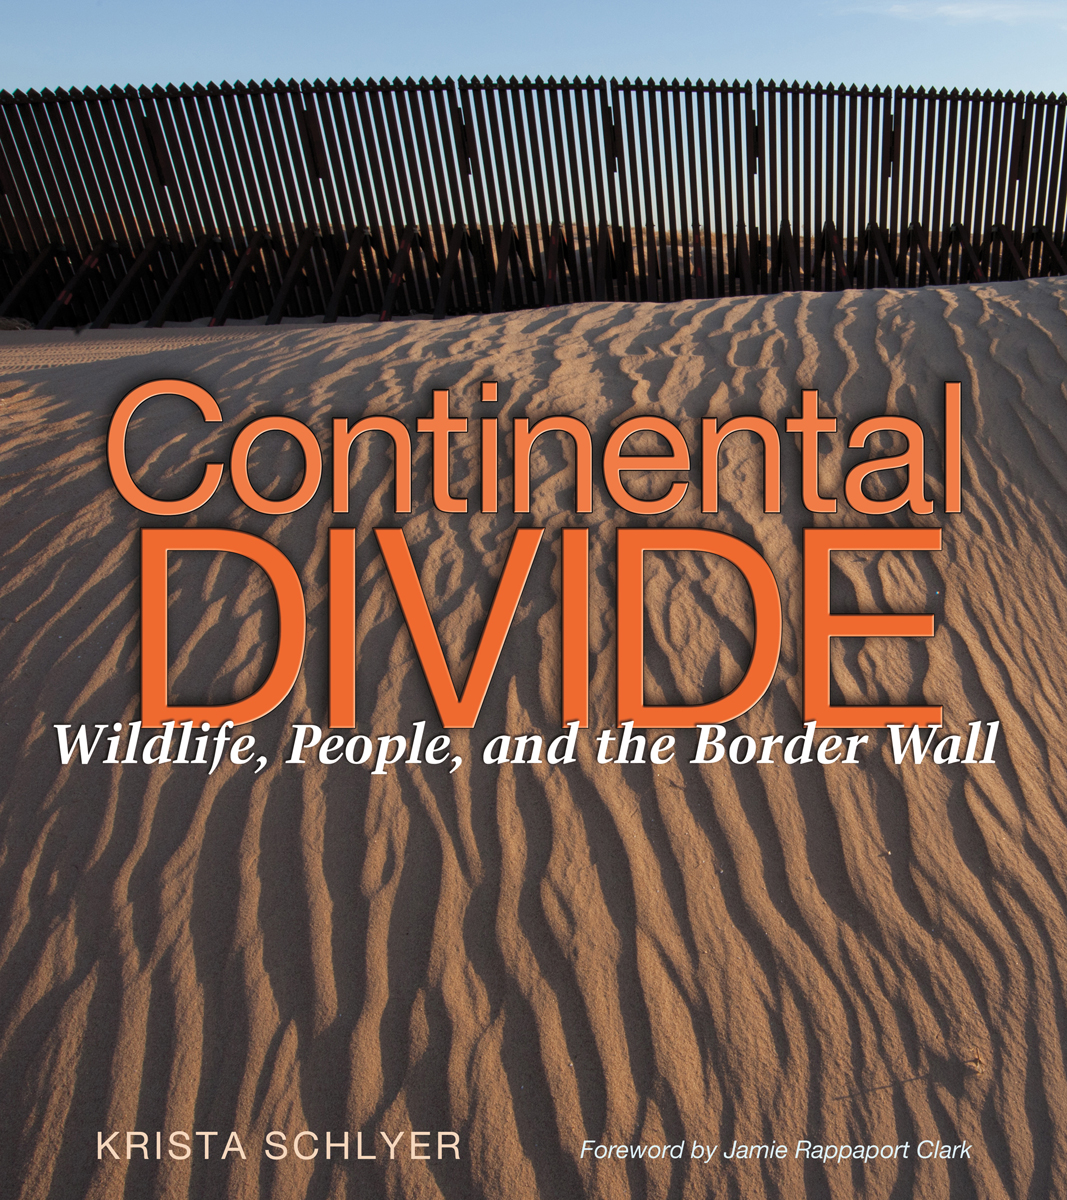 Continental Divide: Wildlife, People and the Border Wall–Book talk by Krista Schlyer